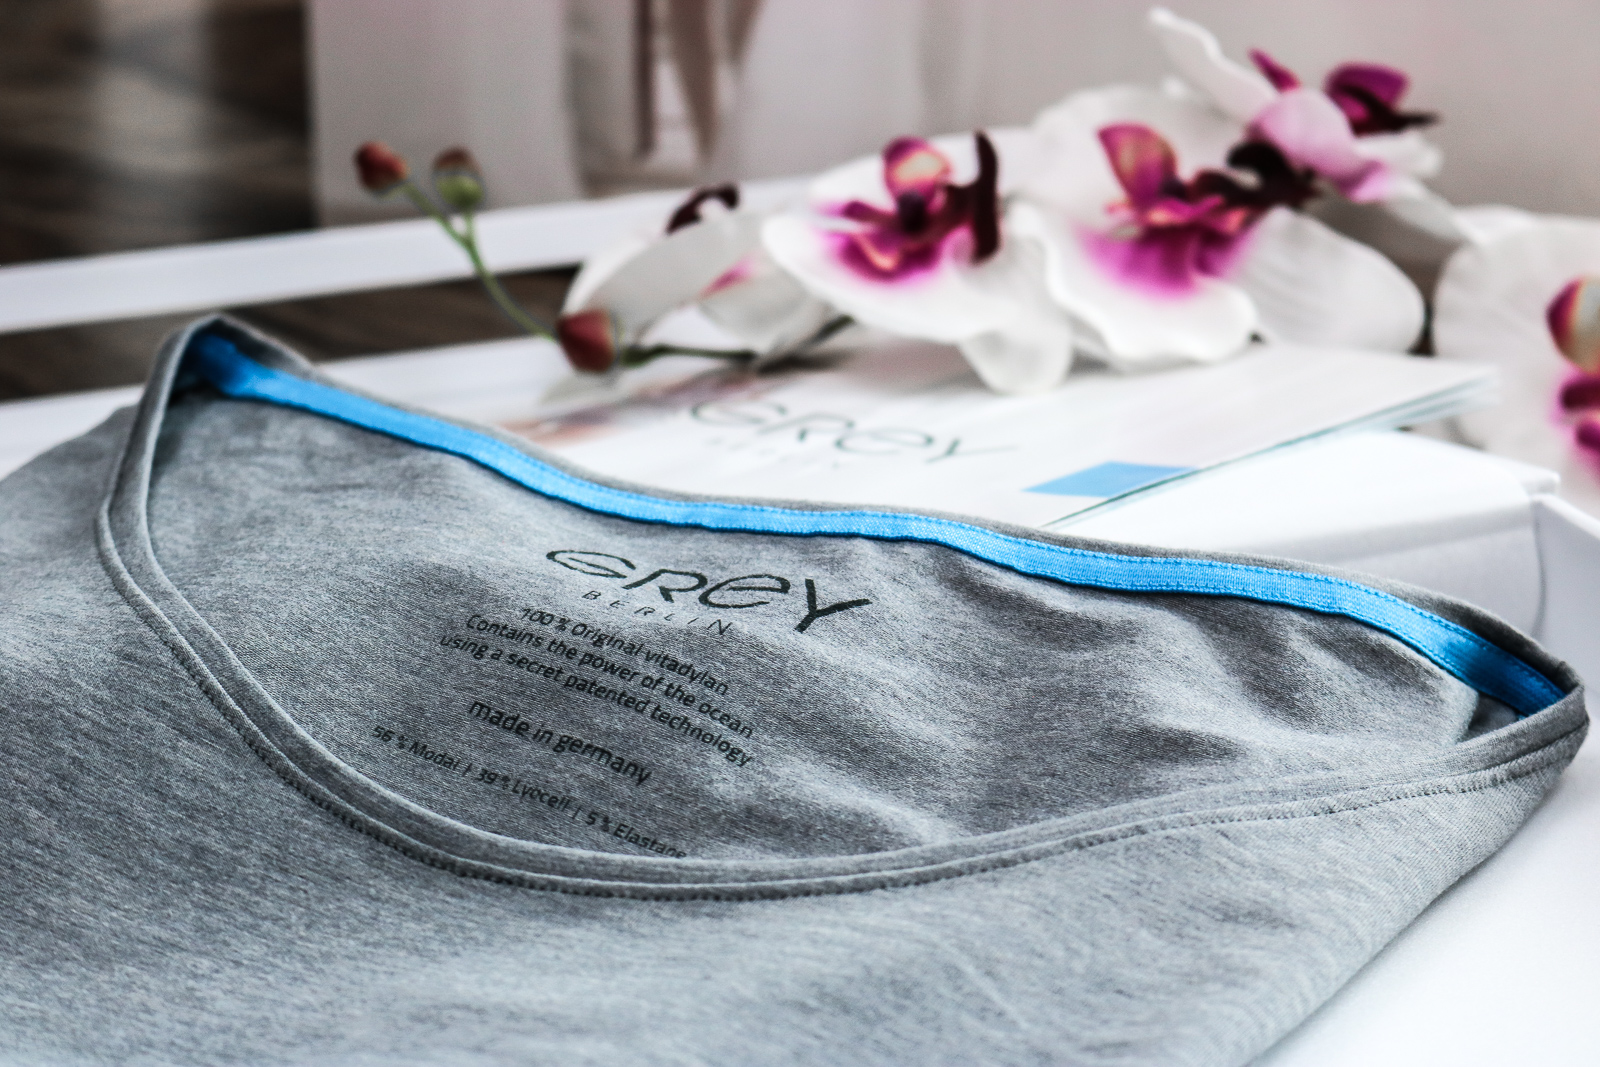 Grey Shirt - the first caring shirt in the world made from the fabric Vitadylan by Grey Fashion - shirt with skin caring ingredients - Grey Fashion Berlin - Fashionladyloves by Tamara Wagner - Fashion BLog - Modeblog from Austria